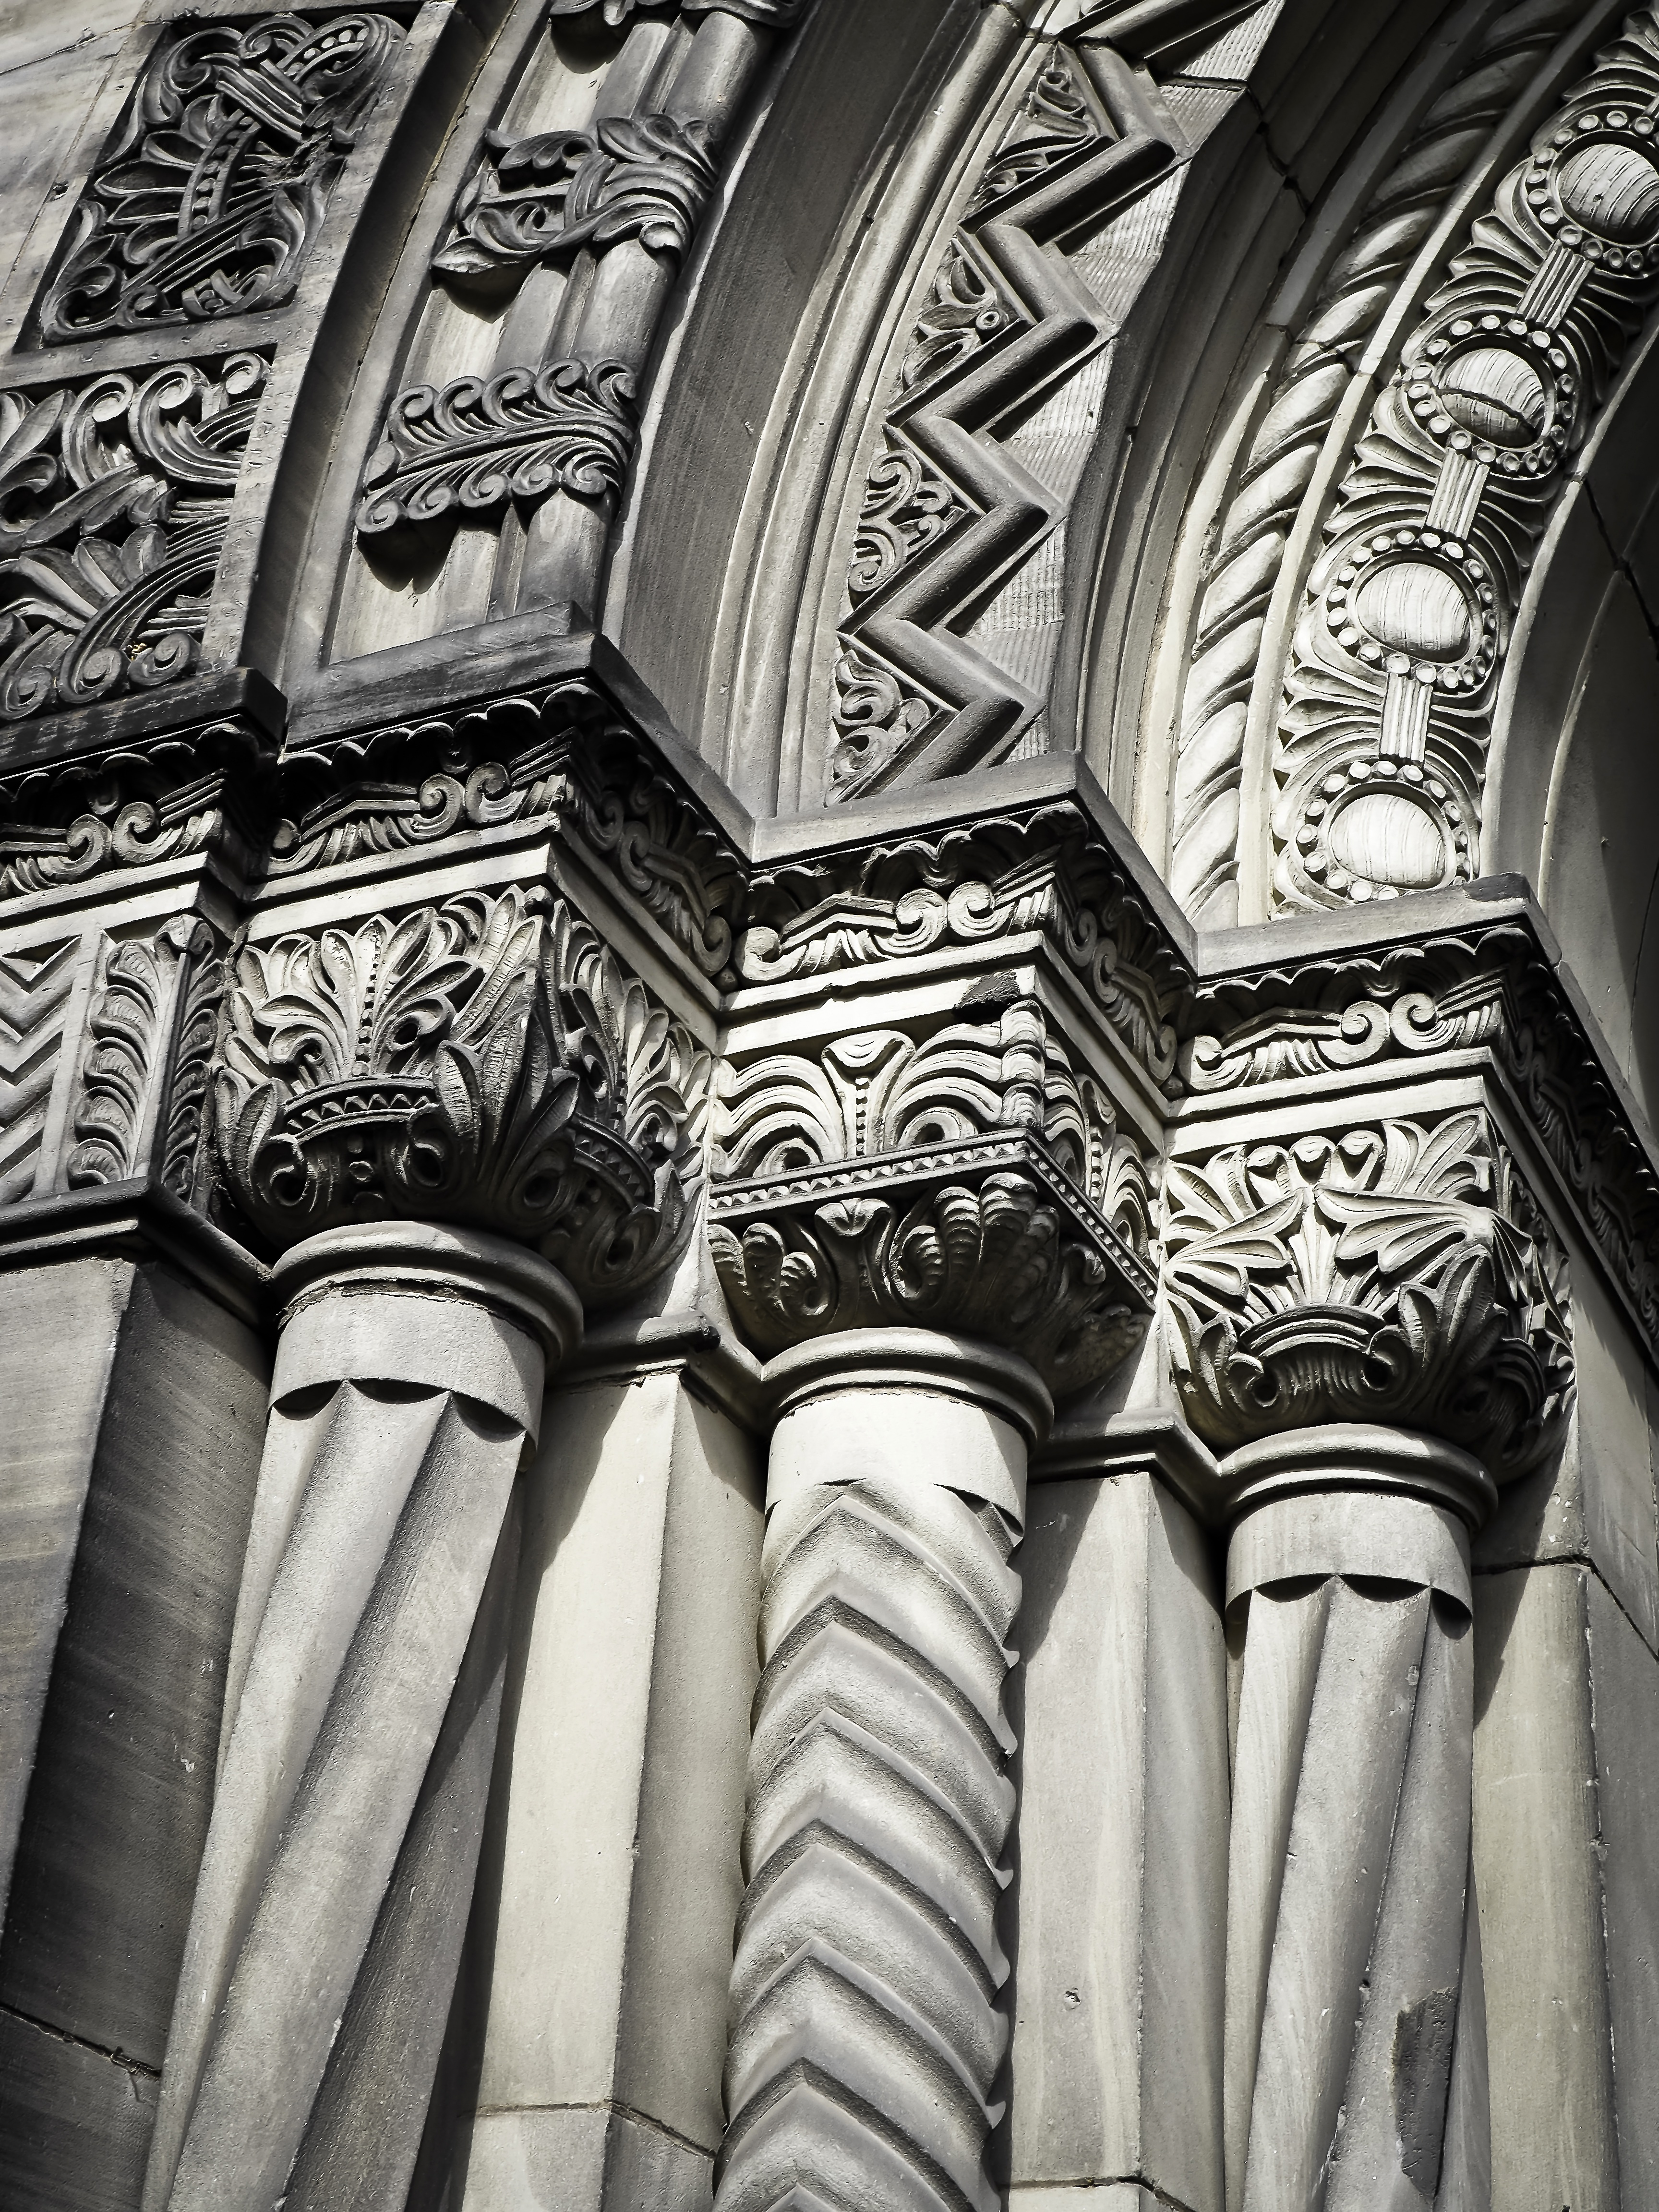 Grayscale Photo of Concrete Building With Pillars